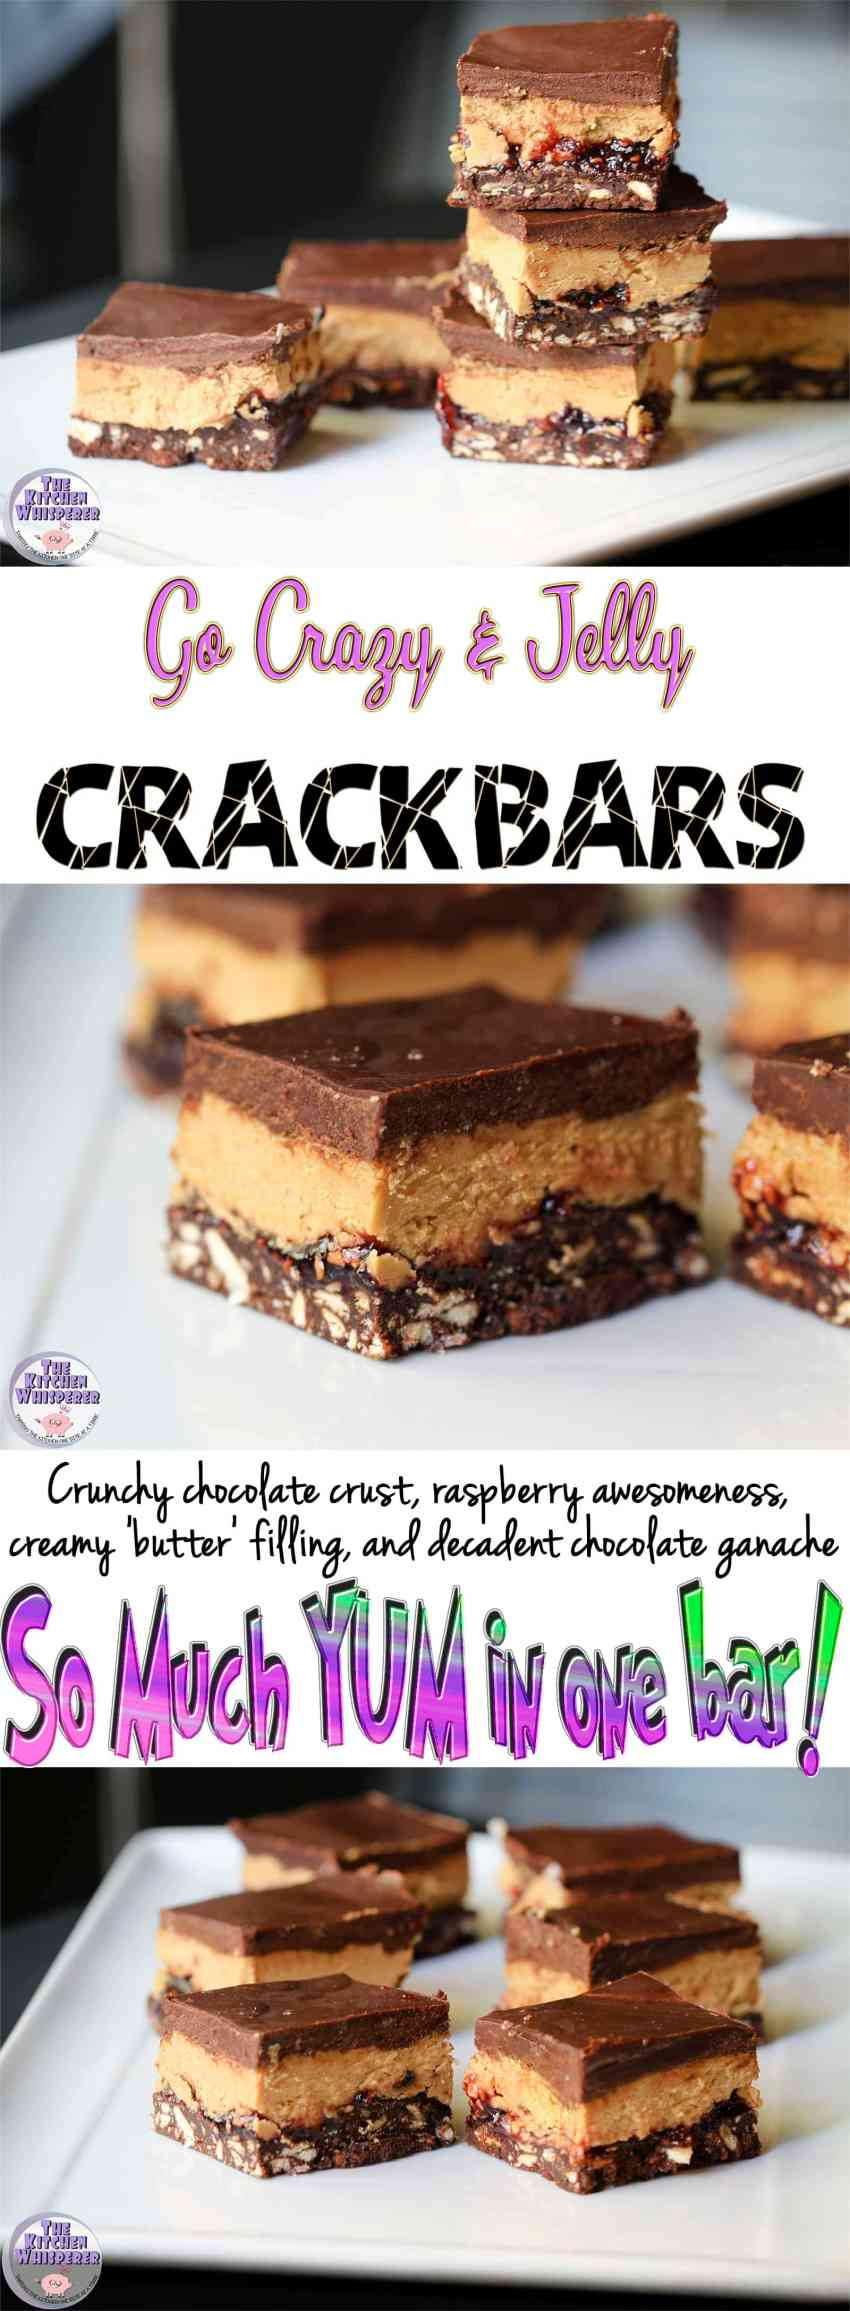 Go Crazy & Jelly Bars - Cookie Butter Peanut Butter & Jelly Crack bars